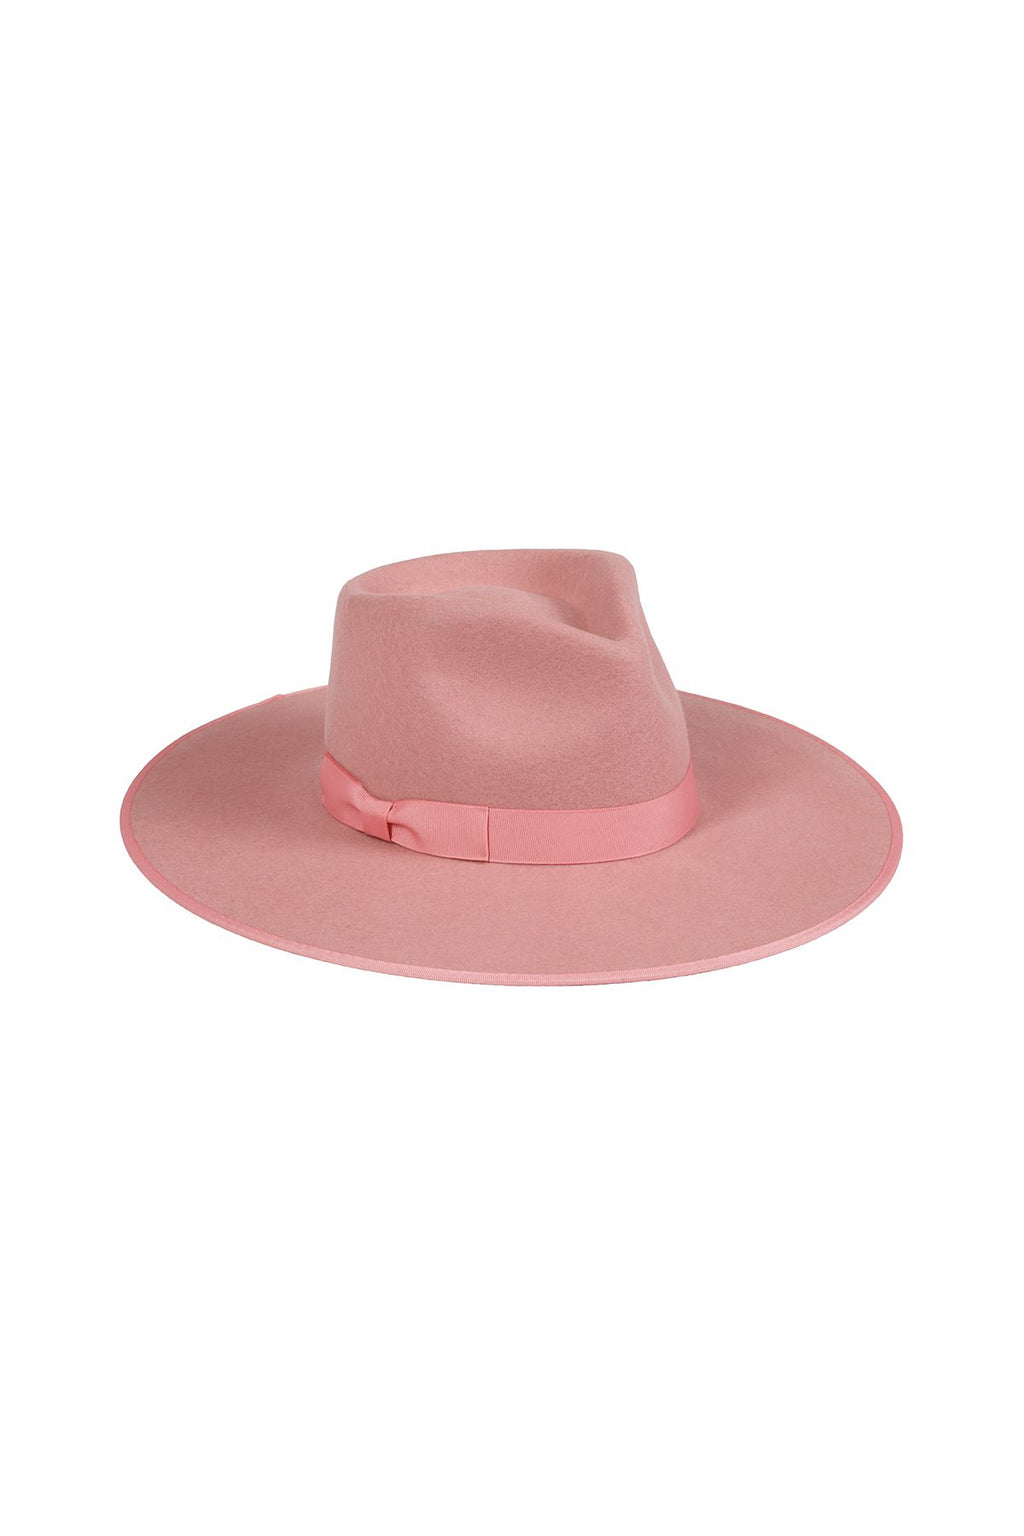 LACK OF COLOR RANCHER HAT IN ROSE